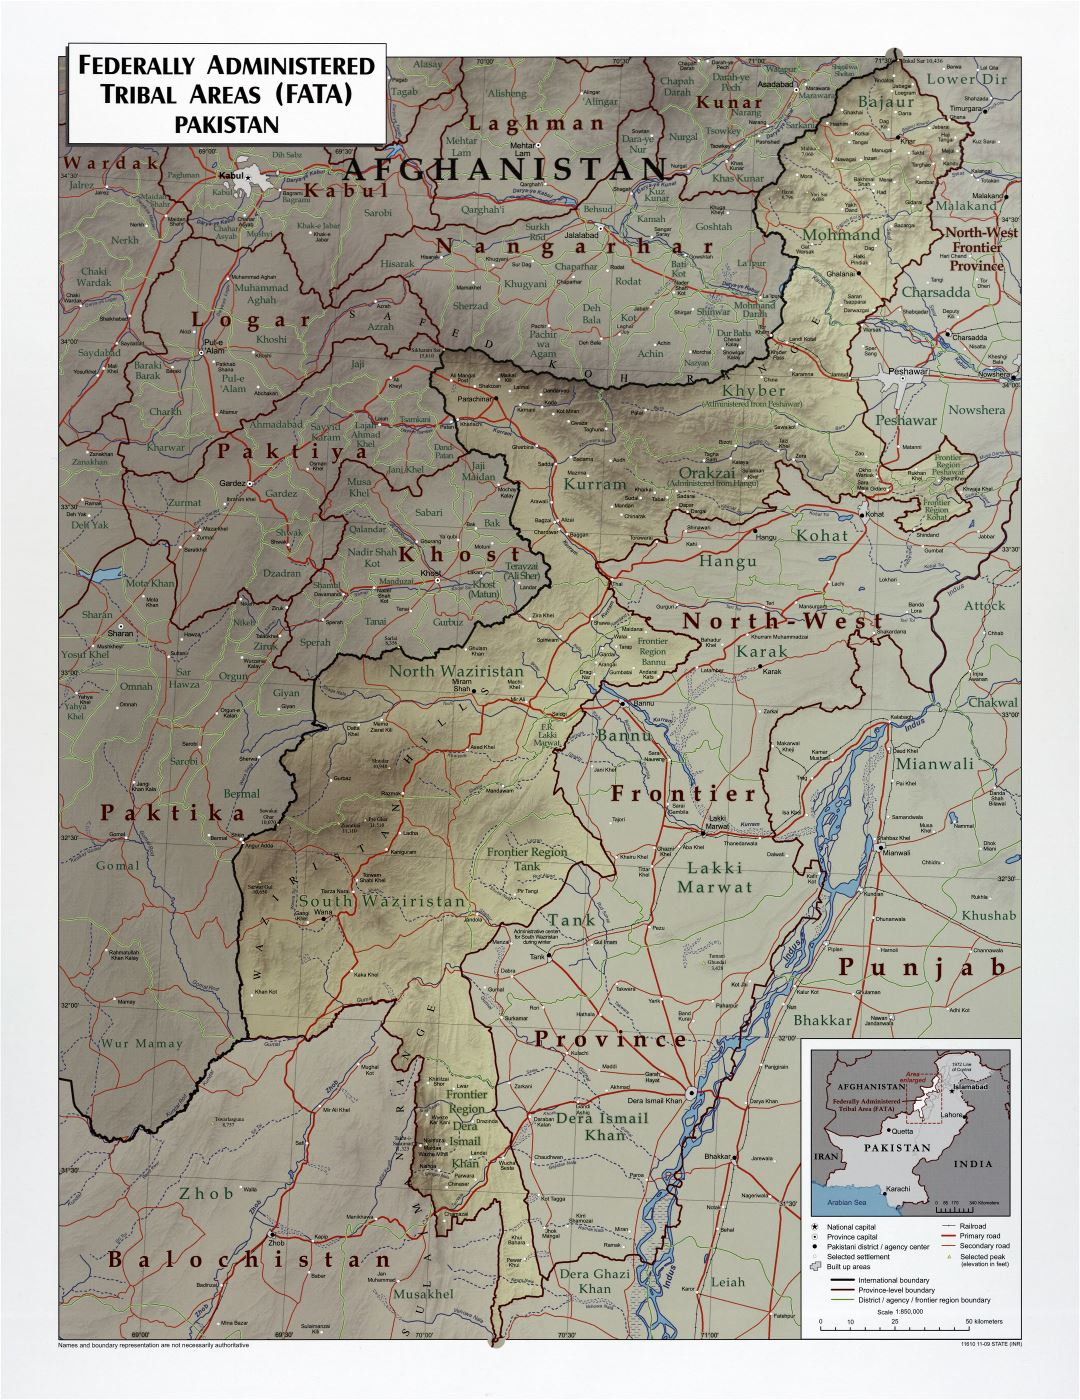 Large scale detailed Federally Administered Tribal Areas (FATA) of Pakistan map with relief, roads, railroads and cities - 2009